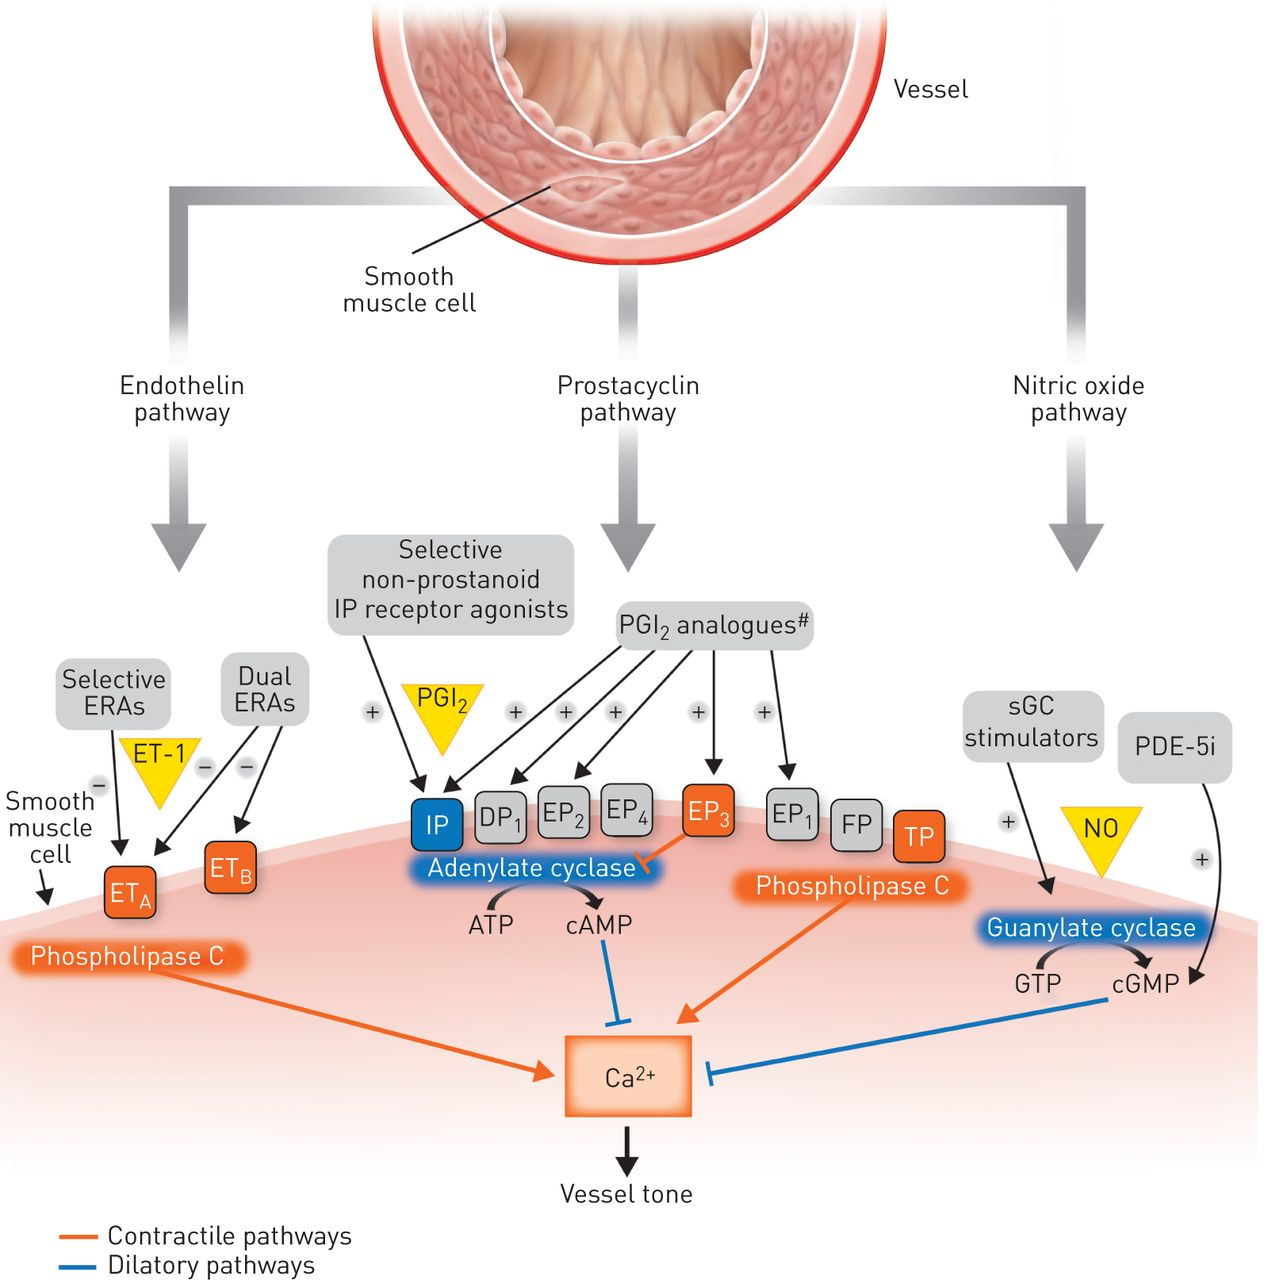 Recent Advances In Targeting The Prostacyclin Pathway In